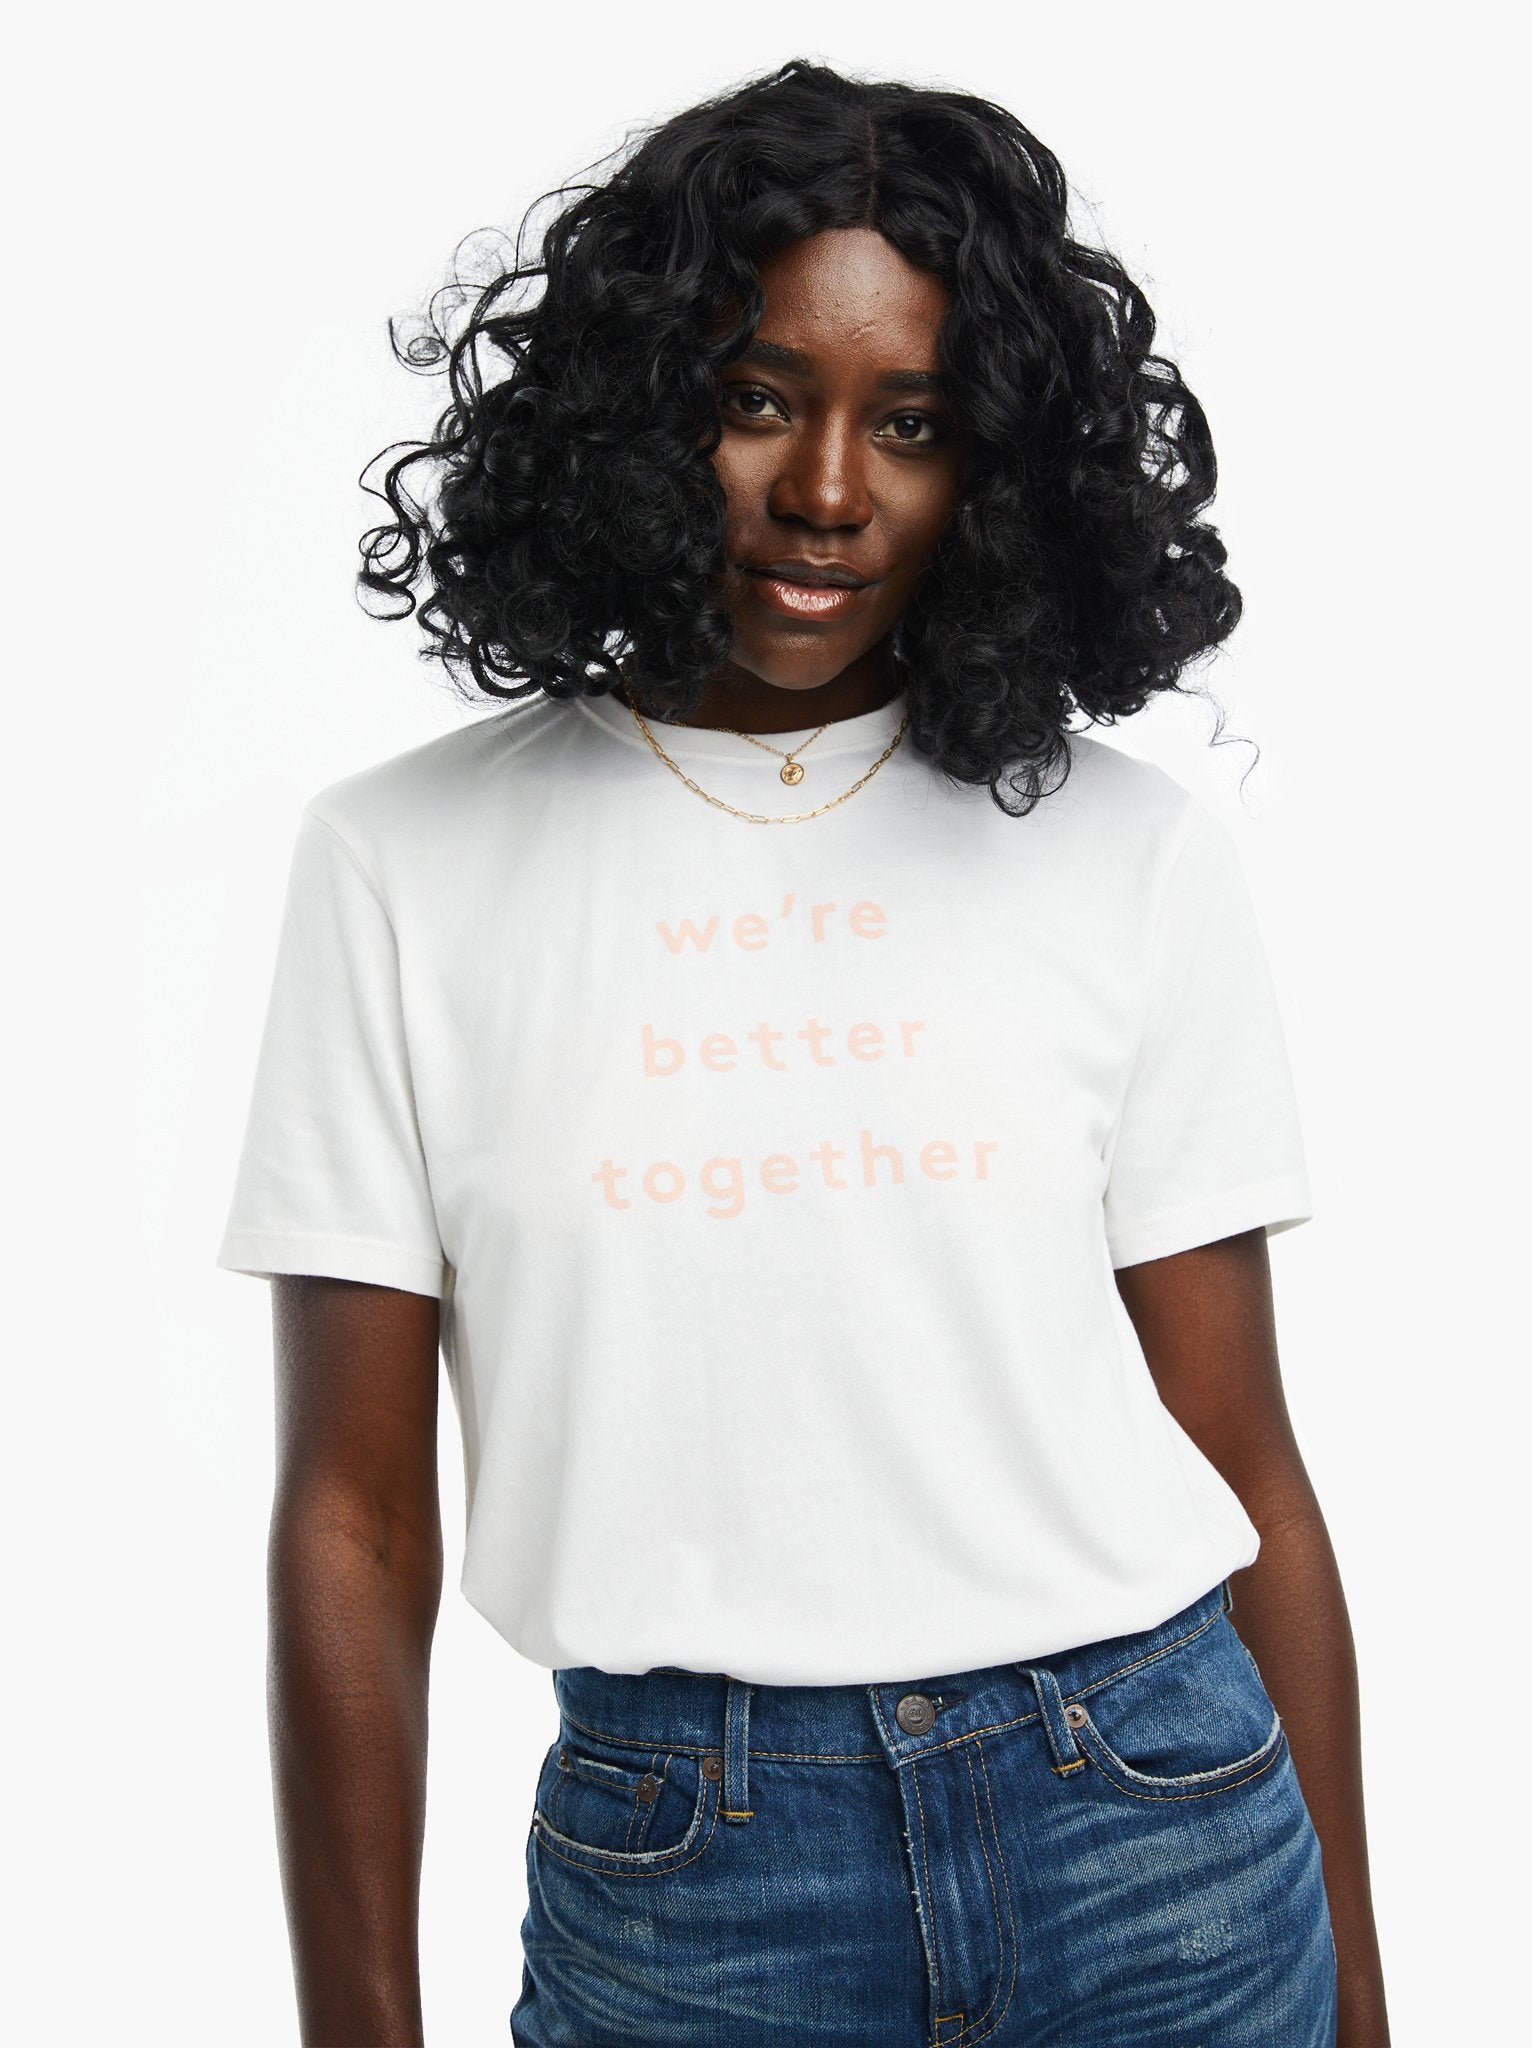 Community Collection T-Shirt: Together